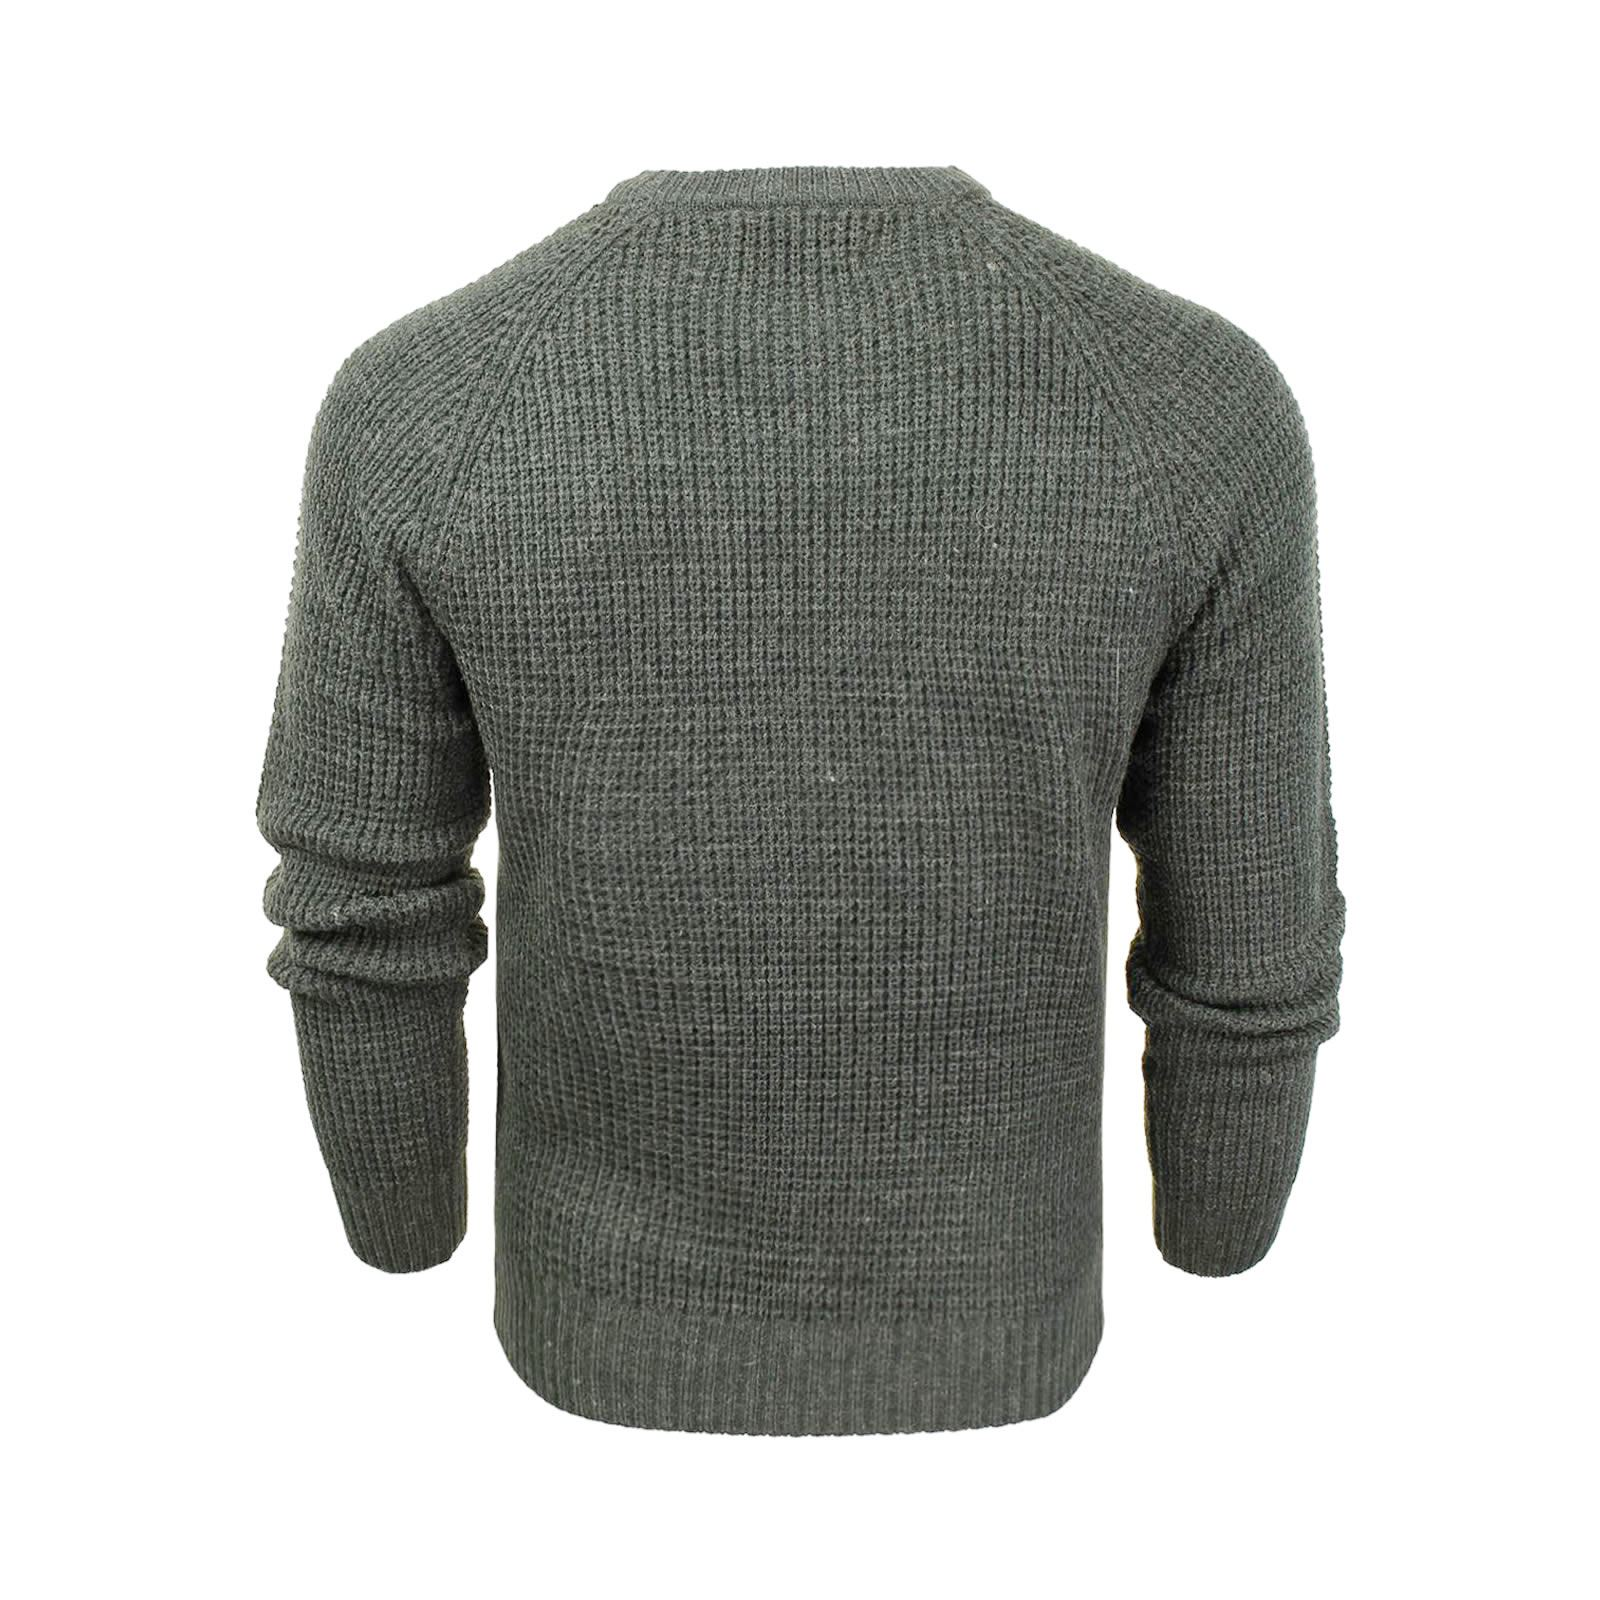 Mens-Jumper-Crosshatch-General-Waffle-Knitted-Crew-Neck-Wool-Mix-Sweater thumbnail 15